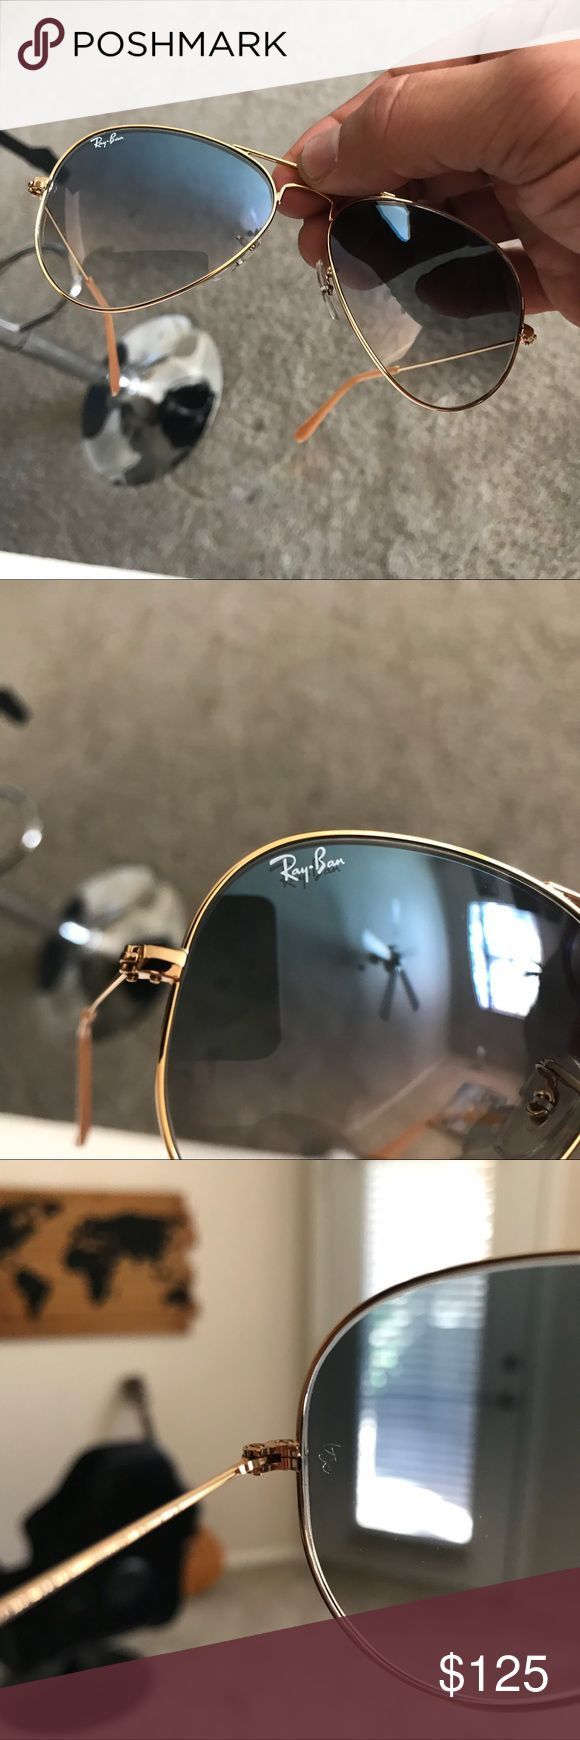 RayBan Gradient Blue Aviators RB3025 001/3F 62mm RayBan Gradient Blue Gold Frame Aviators RB3025 001/3F 62mm  $168 retail.   •These are 100% Brand New and Authentic Ray-Ban Aviator sunglasses  •Your purchase will be shipped in original box and proper packaging to prevent damage  •Your purchase included everything that comes with the original box (Retail Box, Carrying Case, Manuals, etc.) Ray-Ban Accessories Sunglasses